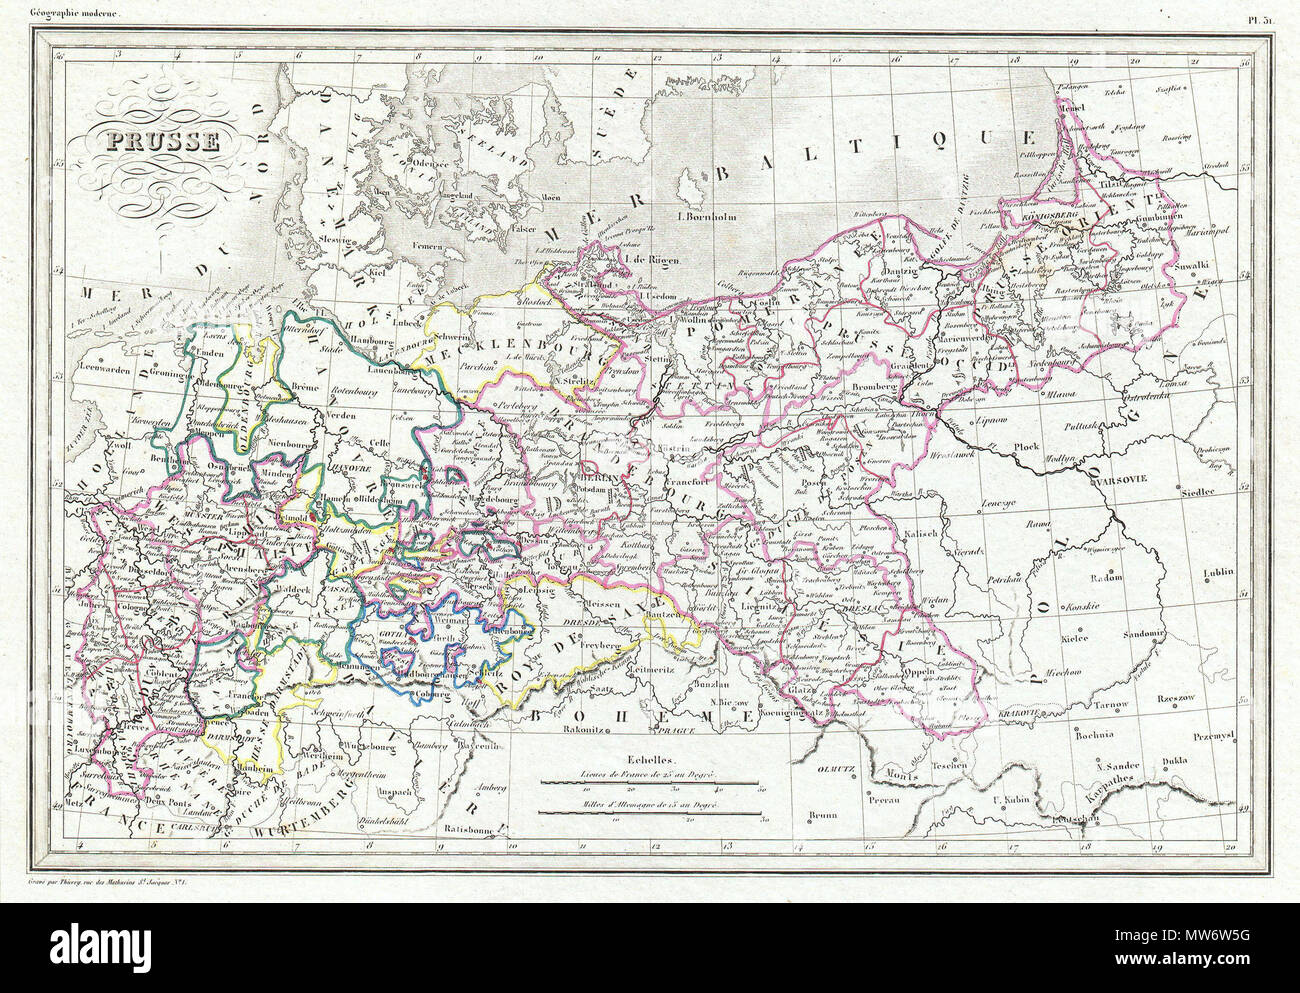 english this is an attractive 1843 map of prussia by the french